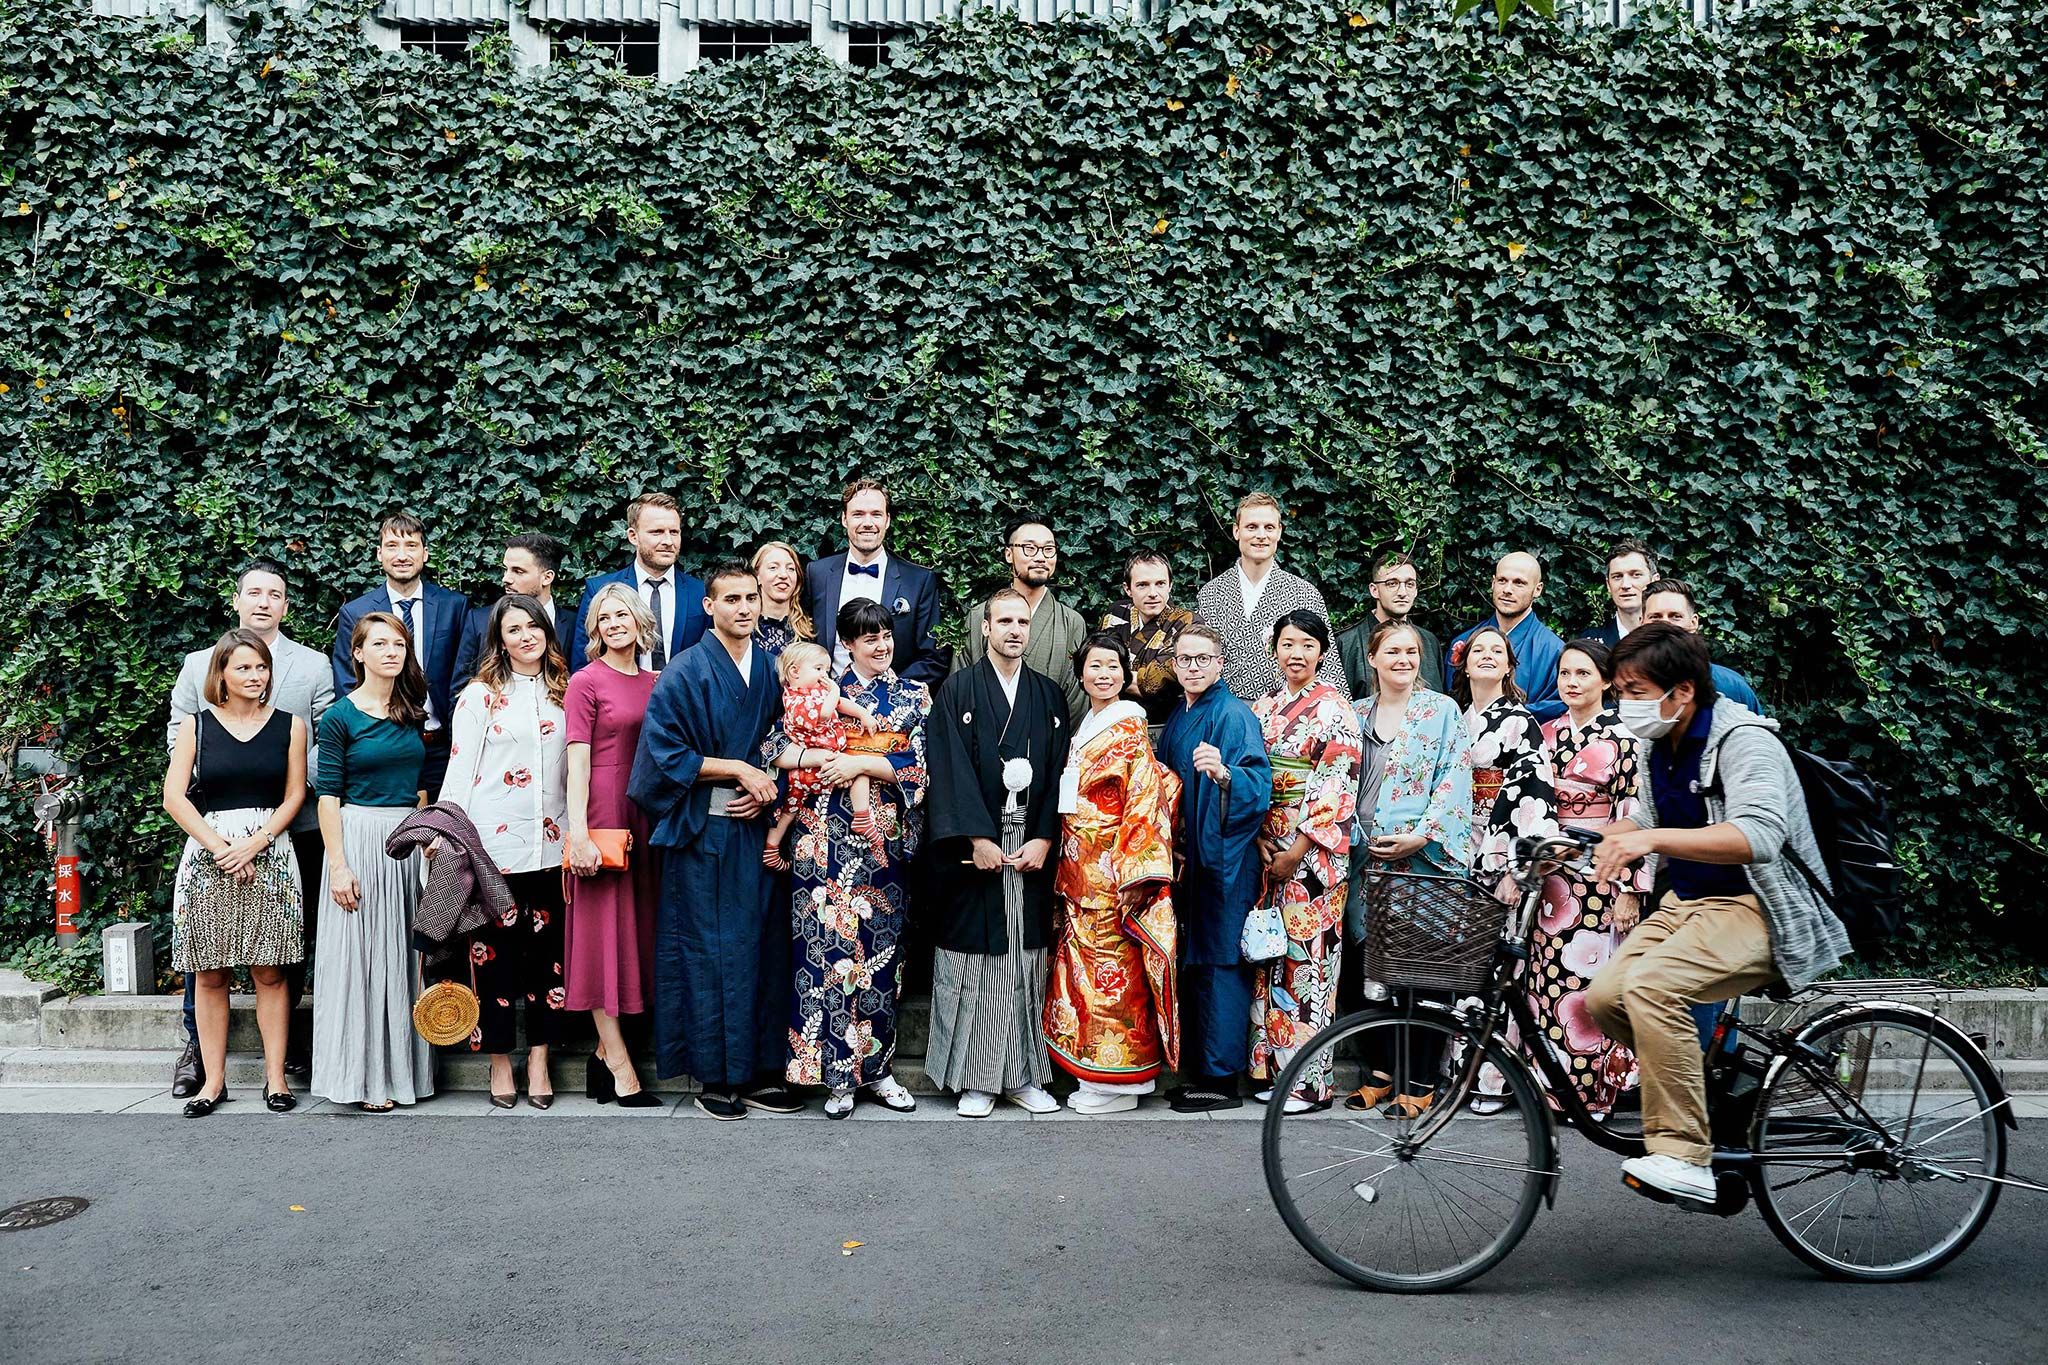 tokyo asakusa shrine traditional wedding group photo disturbed by bike